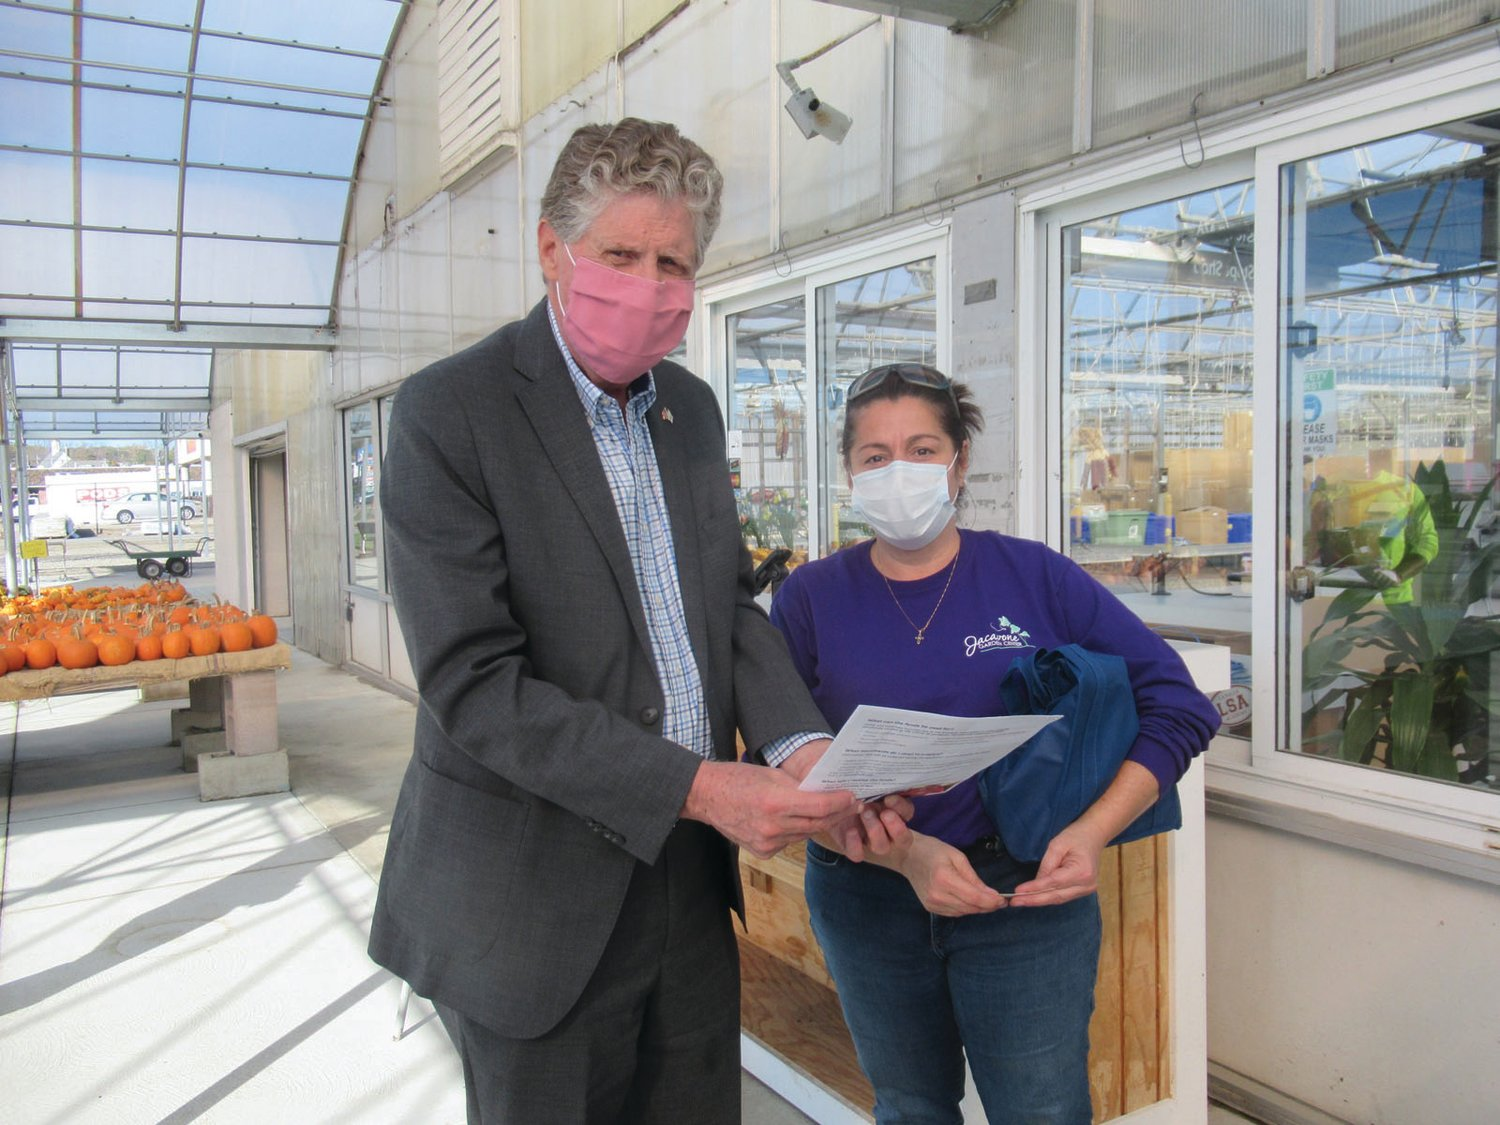 CONNIE'S CORNER: Connie Jacavone, whose family owns and operates the iconic Jacavone Garden Center in Johnston, accepts a special informational package from Lt. Gov. Dan McKee during his Restore RI Grant Tour.